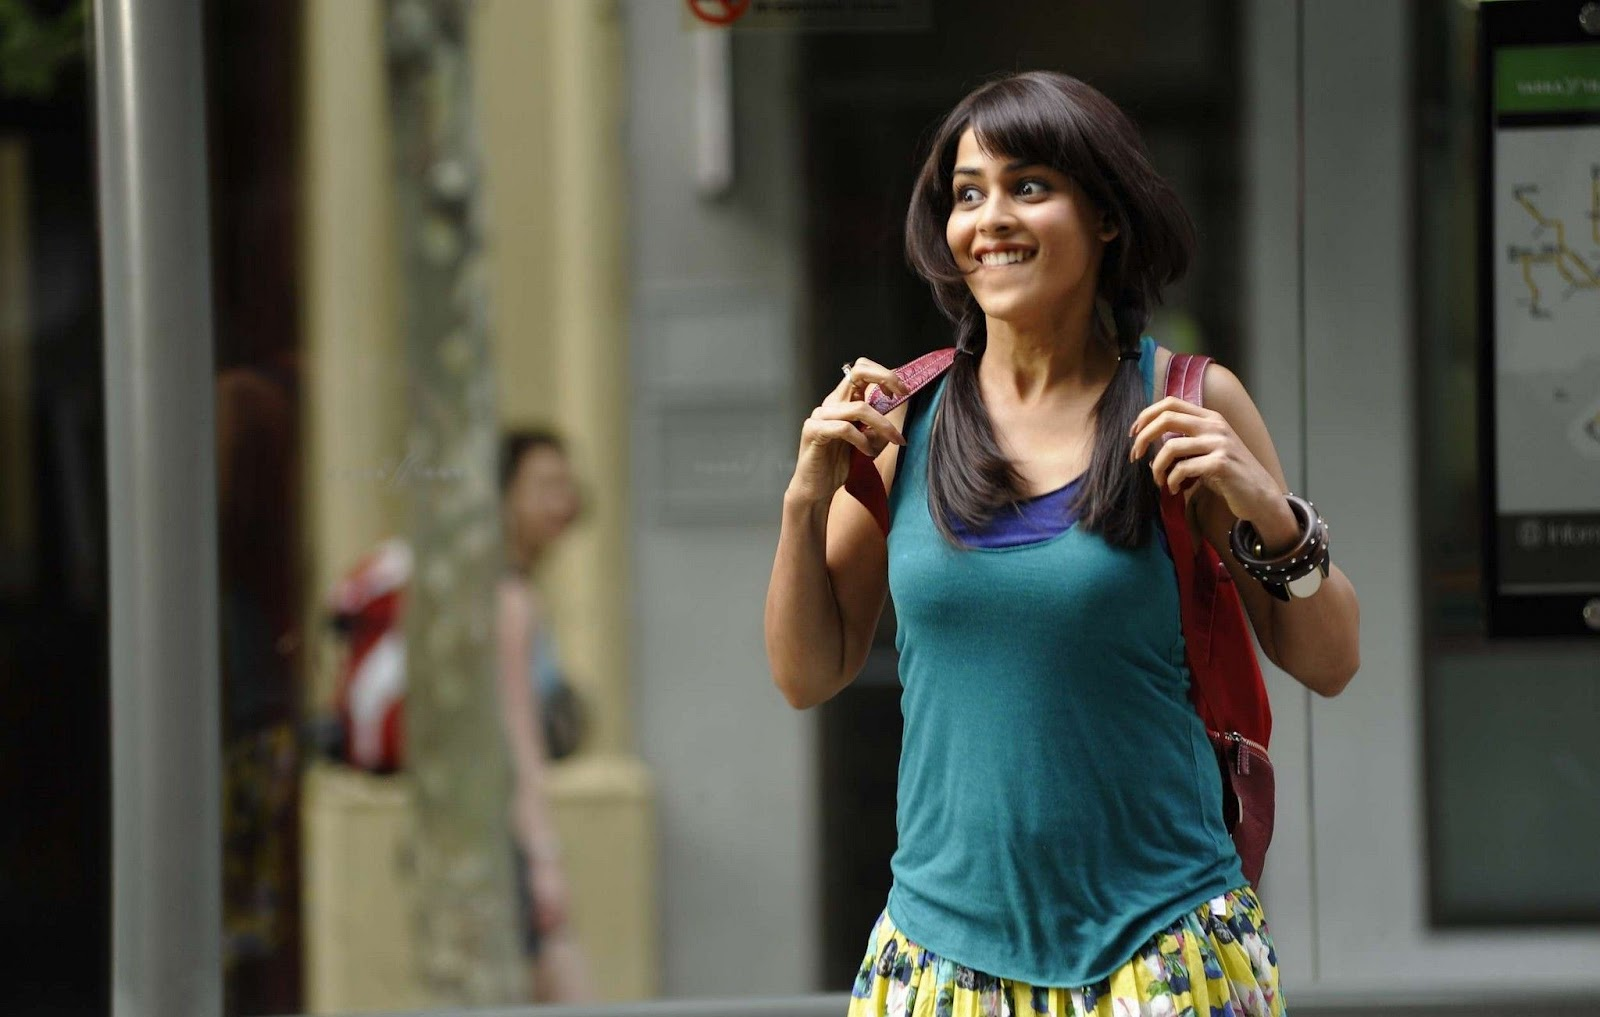 SAB SEXY ACTRESS: Genelia D'Souza Cute and Spicy Photo ...